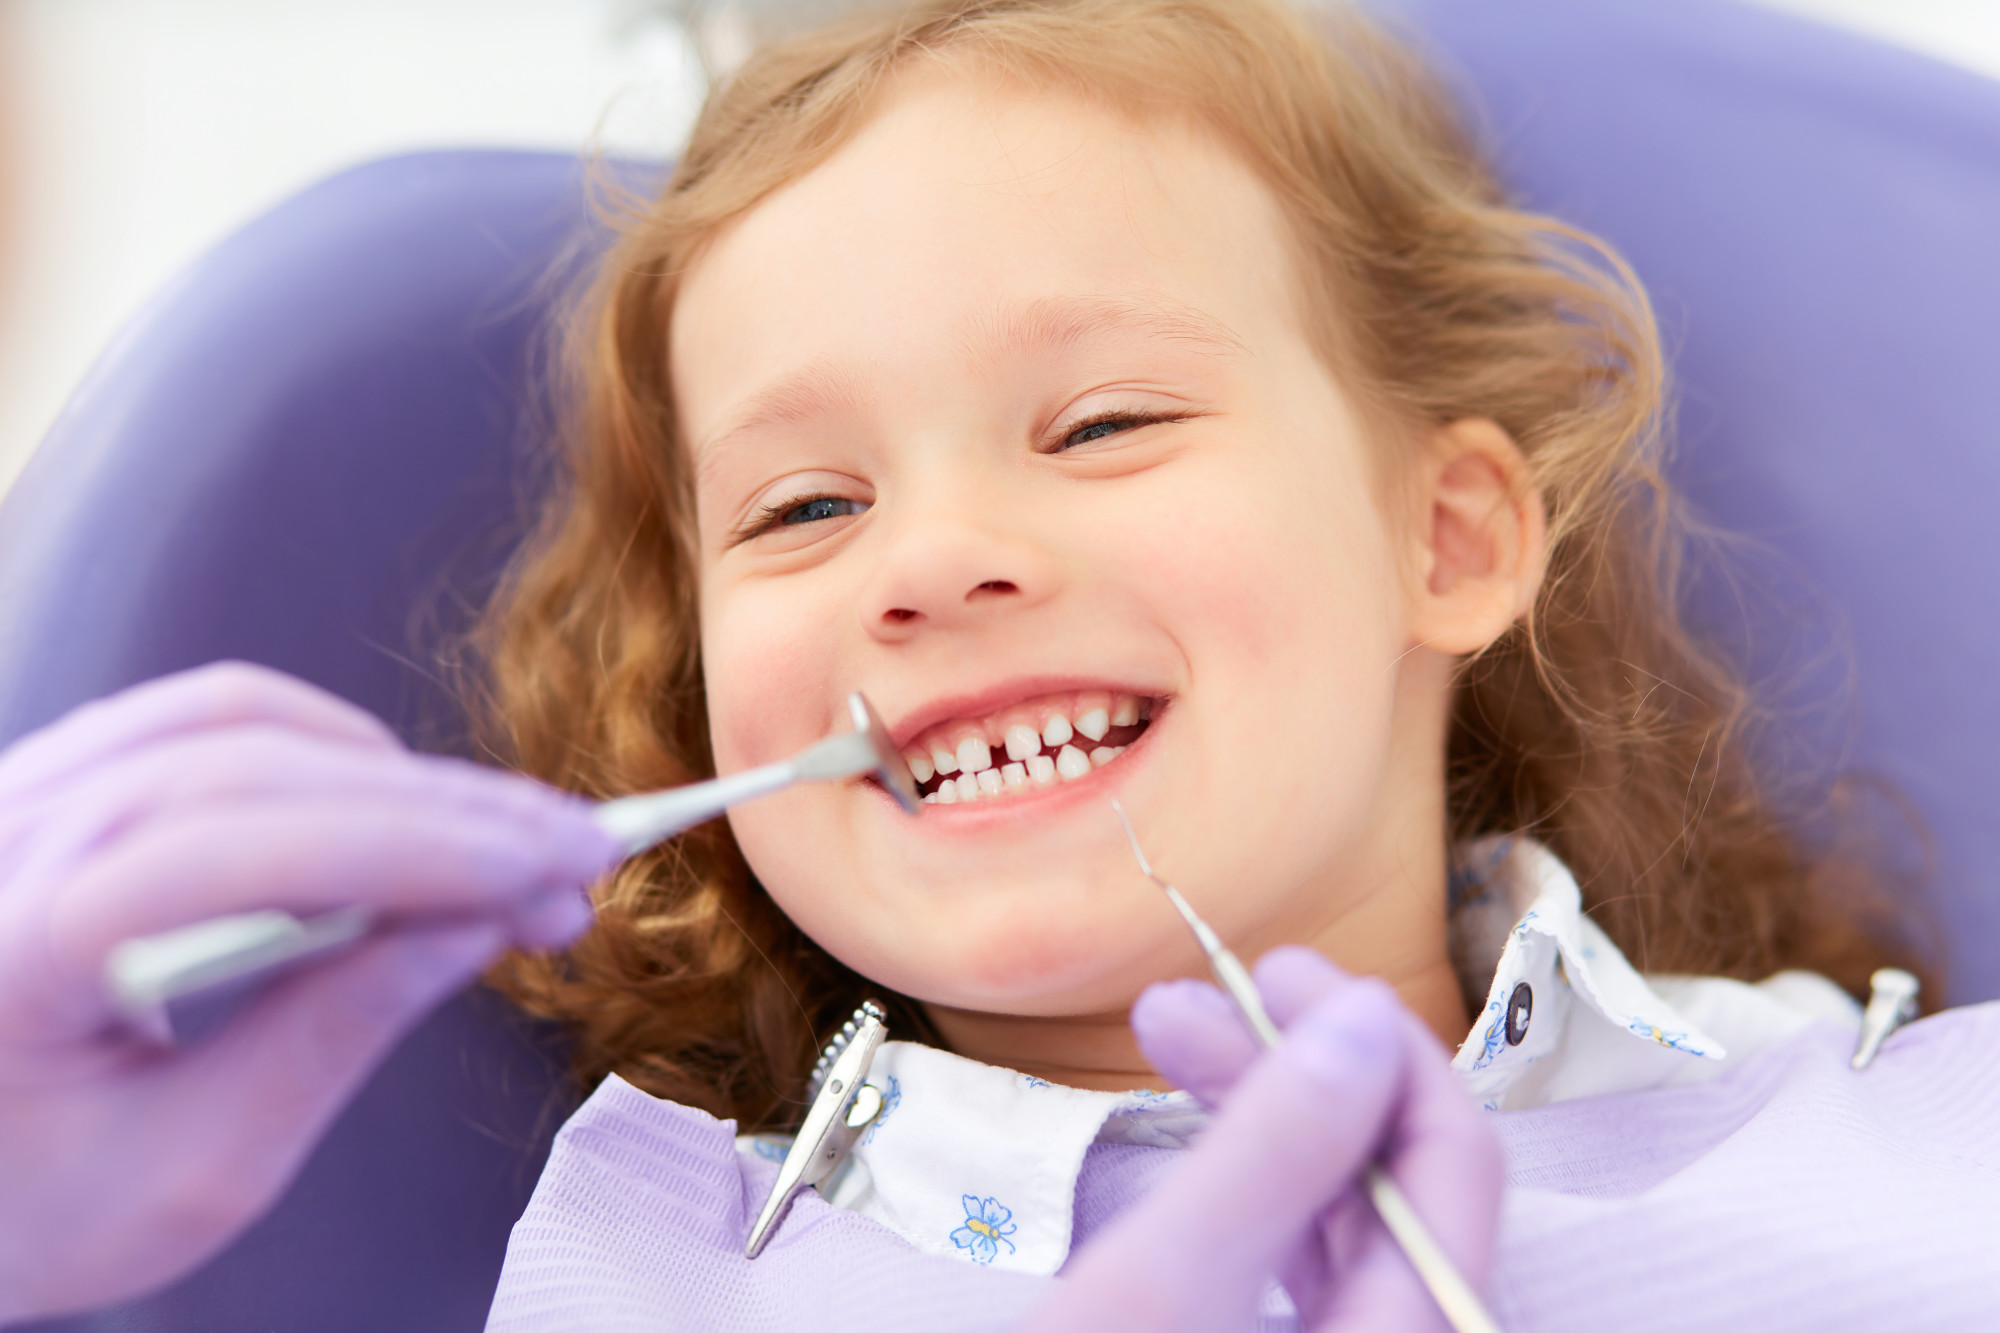 How to Find a Pediatric Dentist You Can Trust